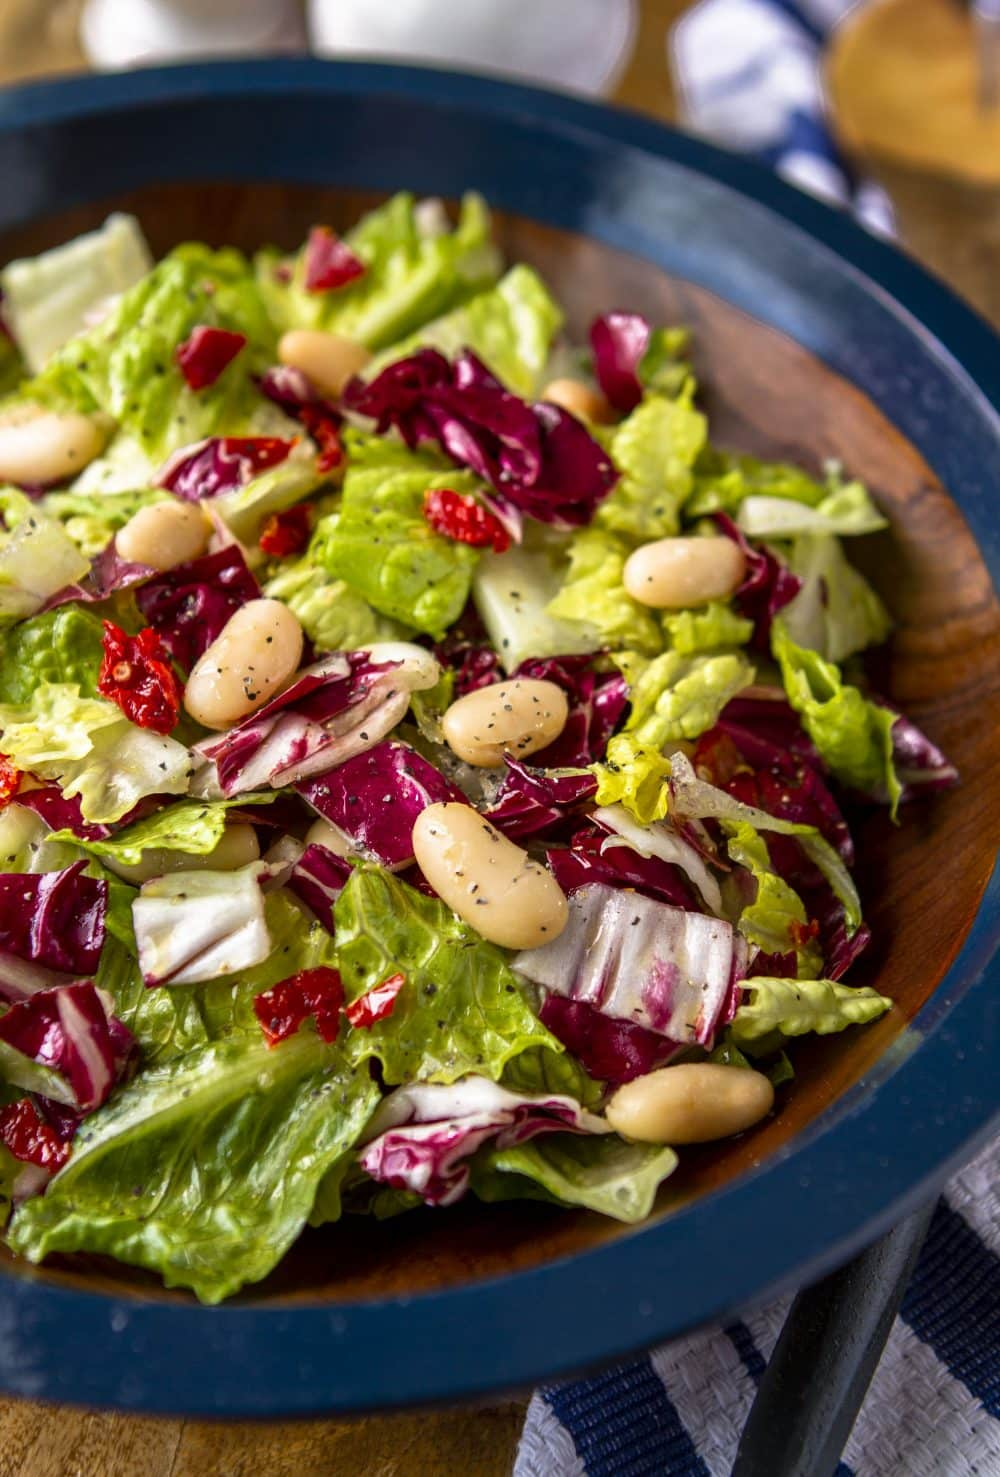 vegan Italian chopped salad with radicchio, romaine, cannellini beans, and sun-dried tomatoes